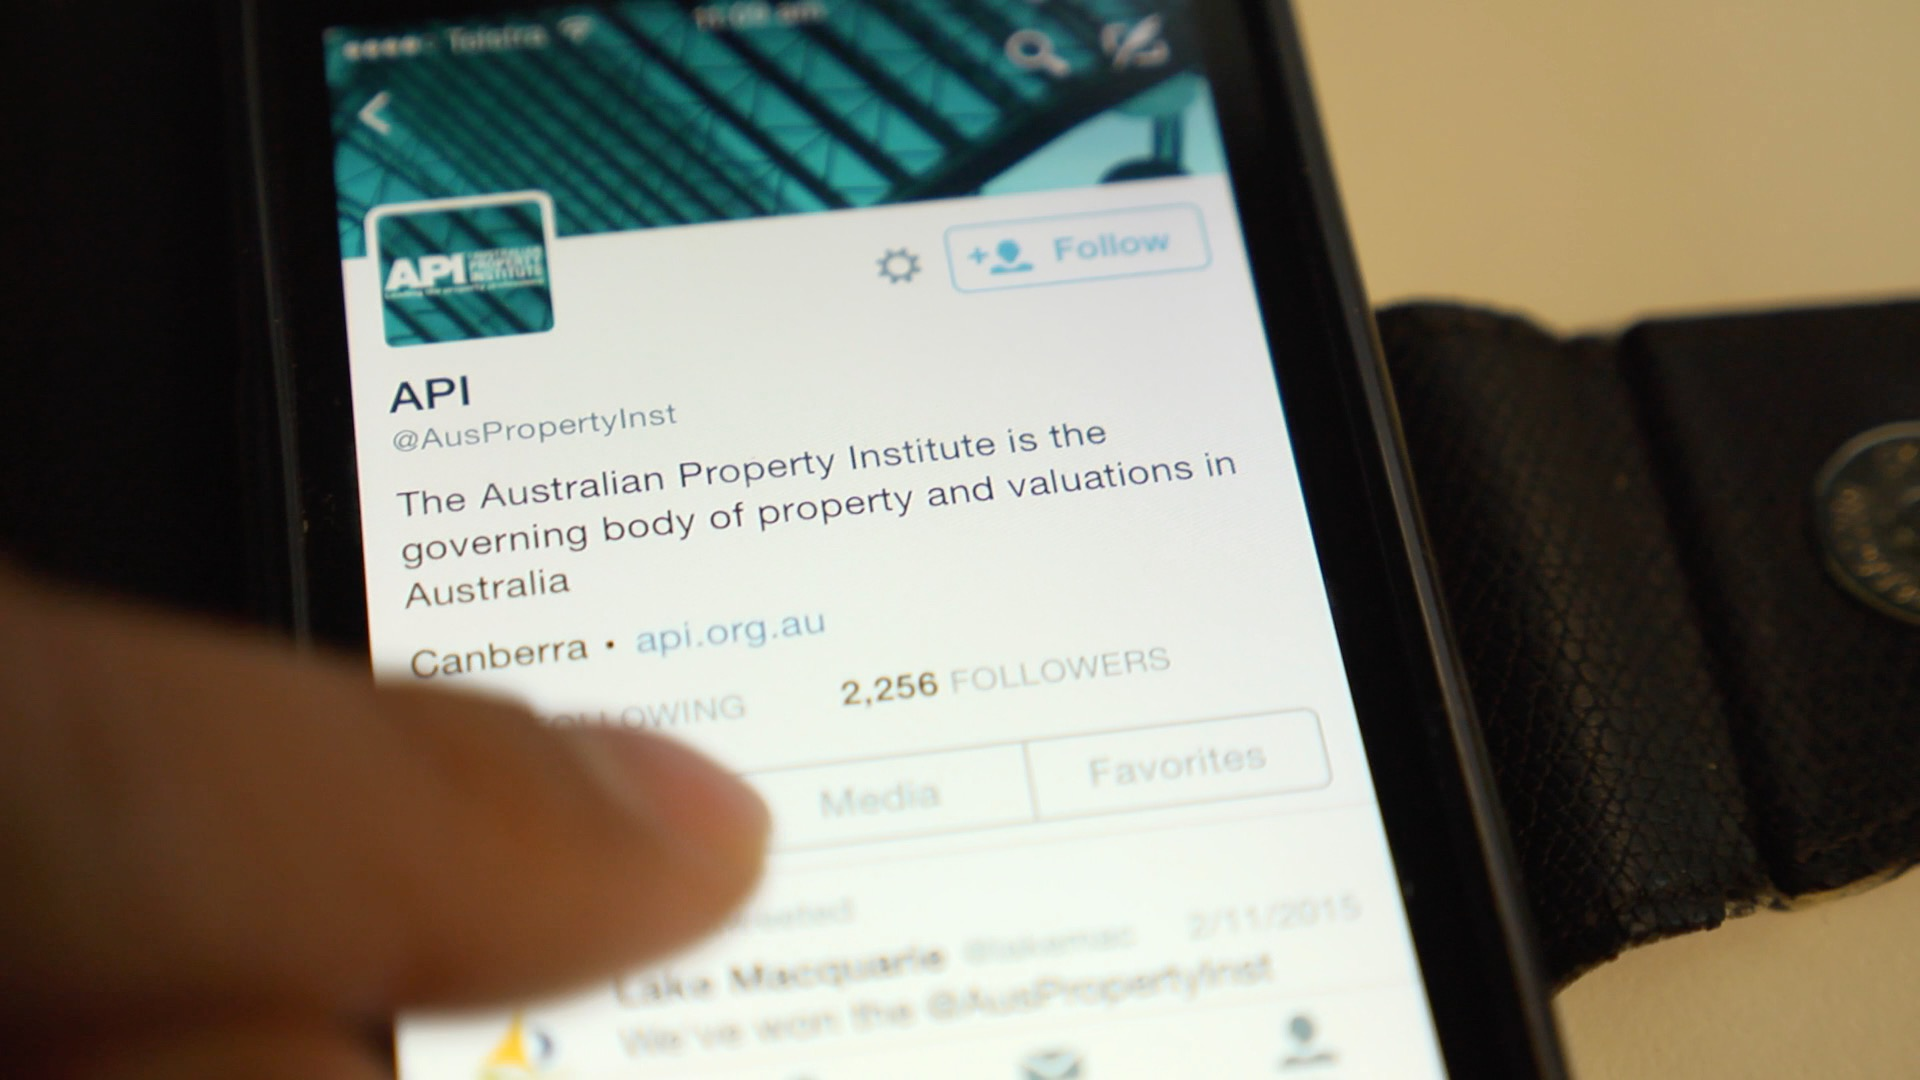 Testimonial: How content marketing worked for The Australian Property Institute